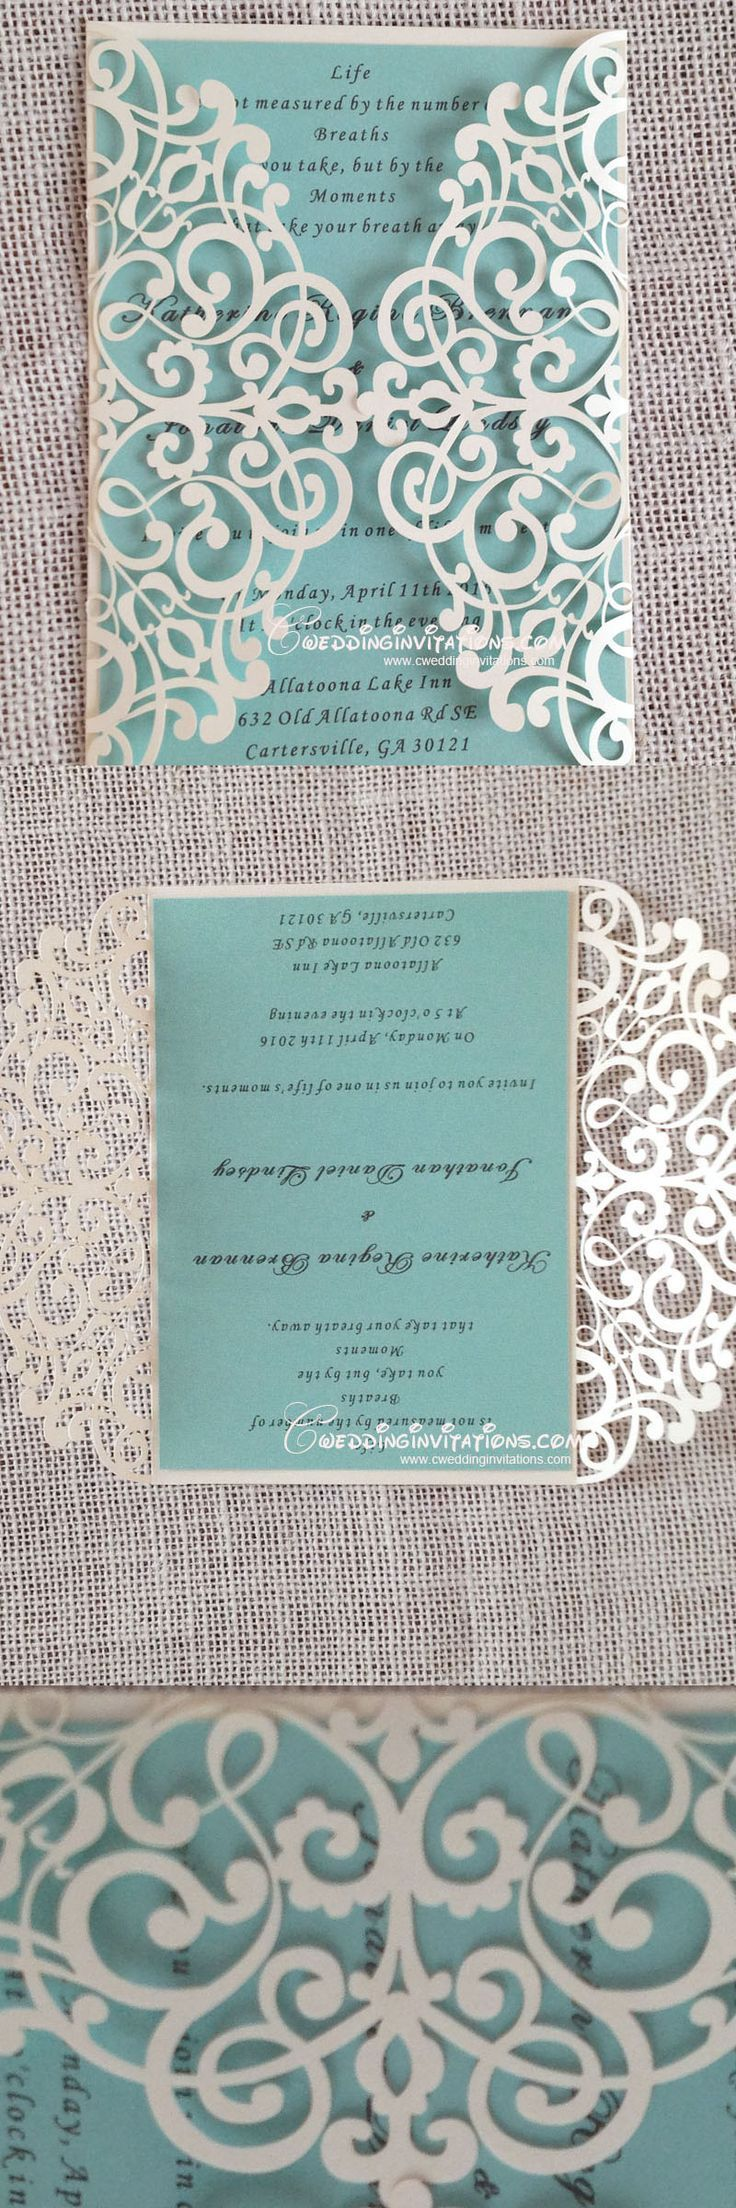 are labels on wedding invitations tacky%0A Card Wedding  Laser Cut Wedding Invitations  Wedding Ideas  Tiffany Wedding  Invitations  Invites  Wedding Decor  Wedding Stuff  Catering  Reception  Ideas